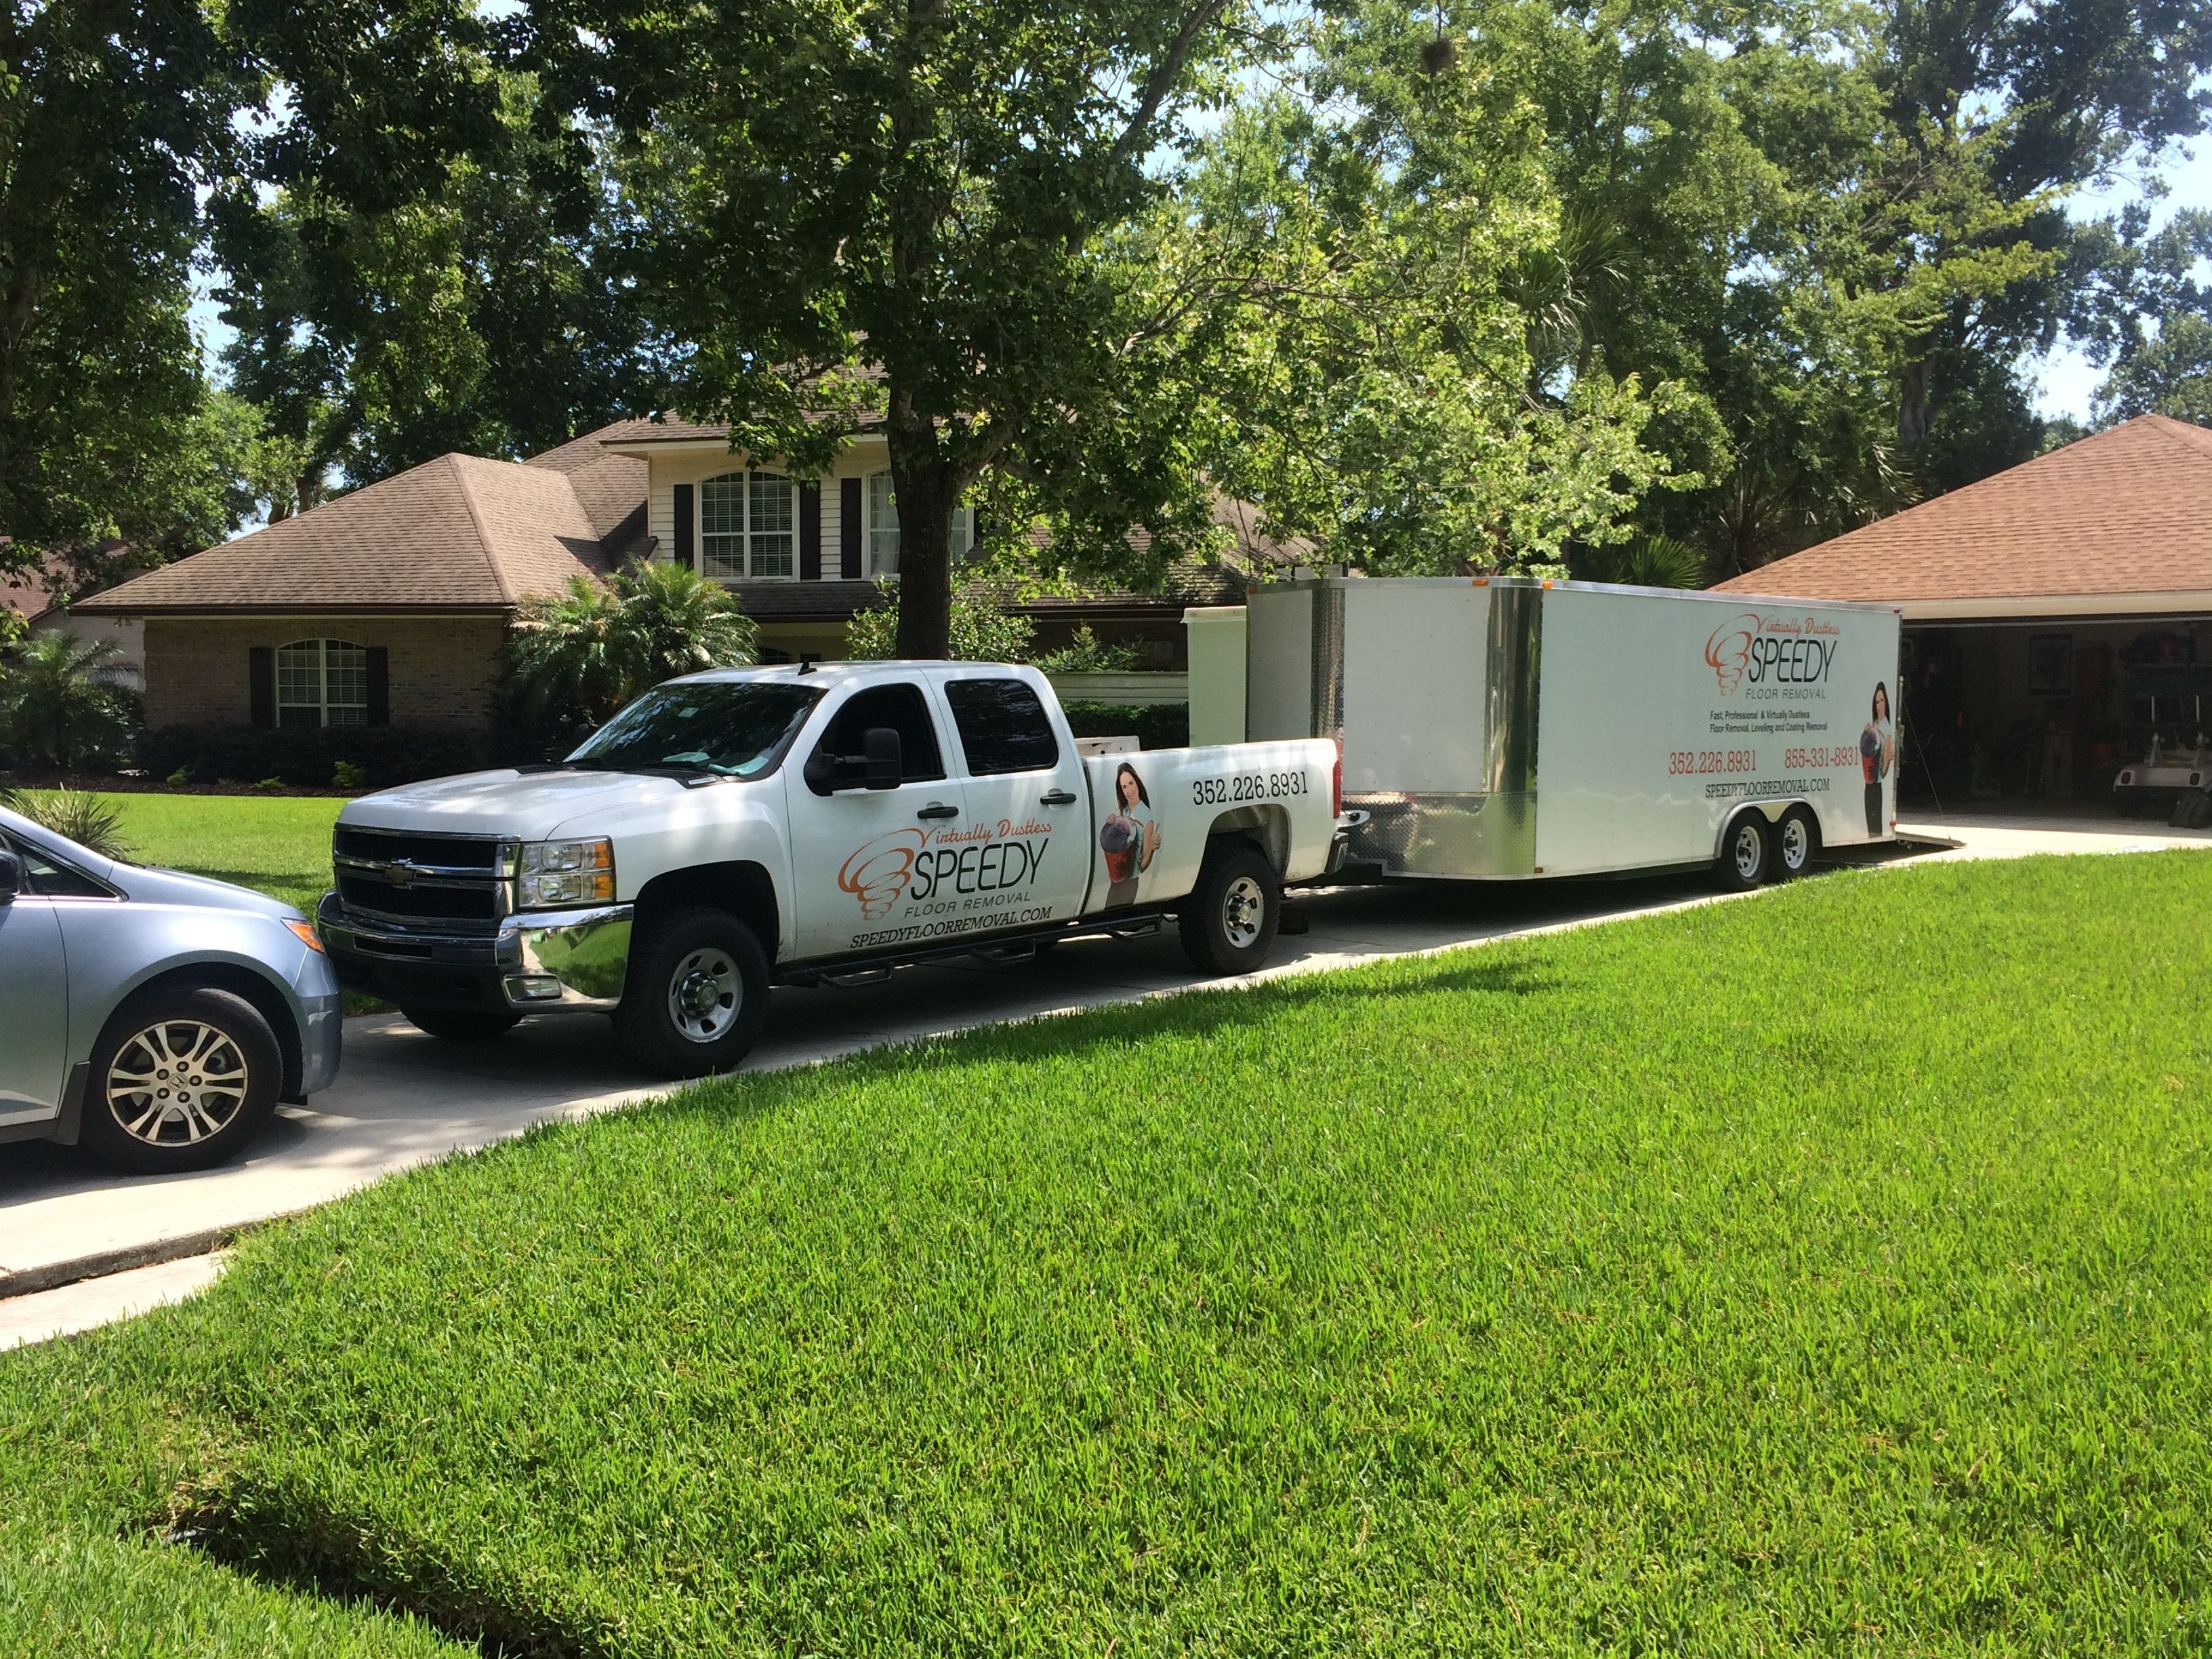 Image of a Speedy Floor Removal branded truck on the job